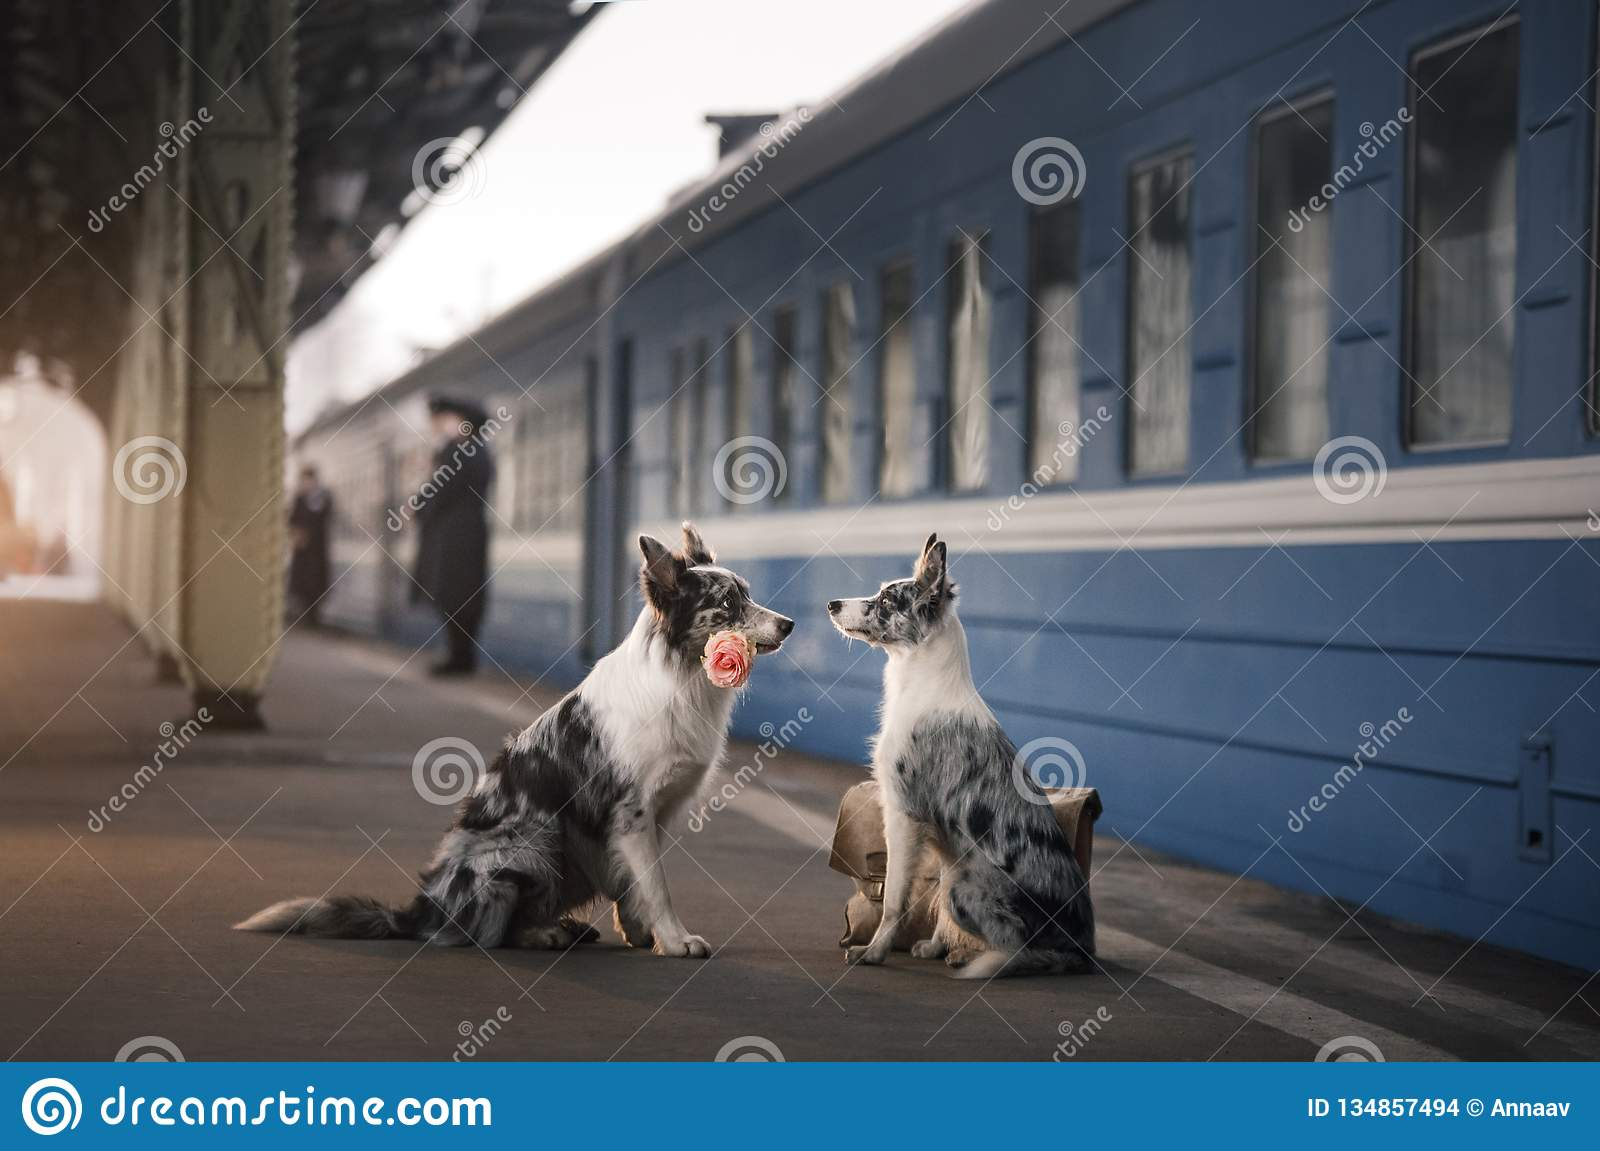 Two dogs together. Meeting at the station. Travelling